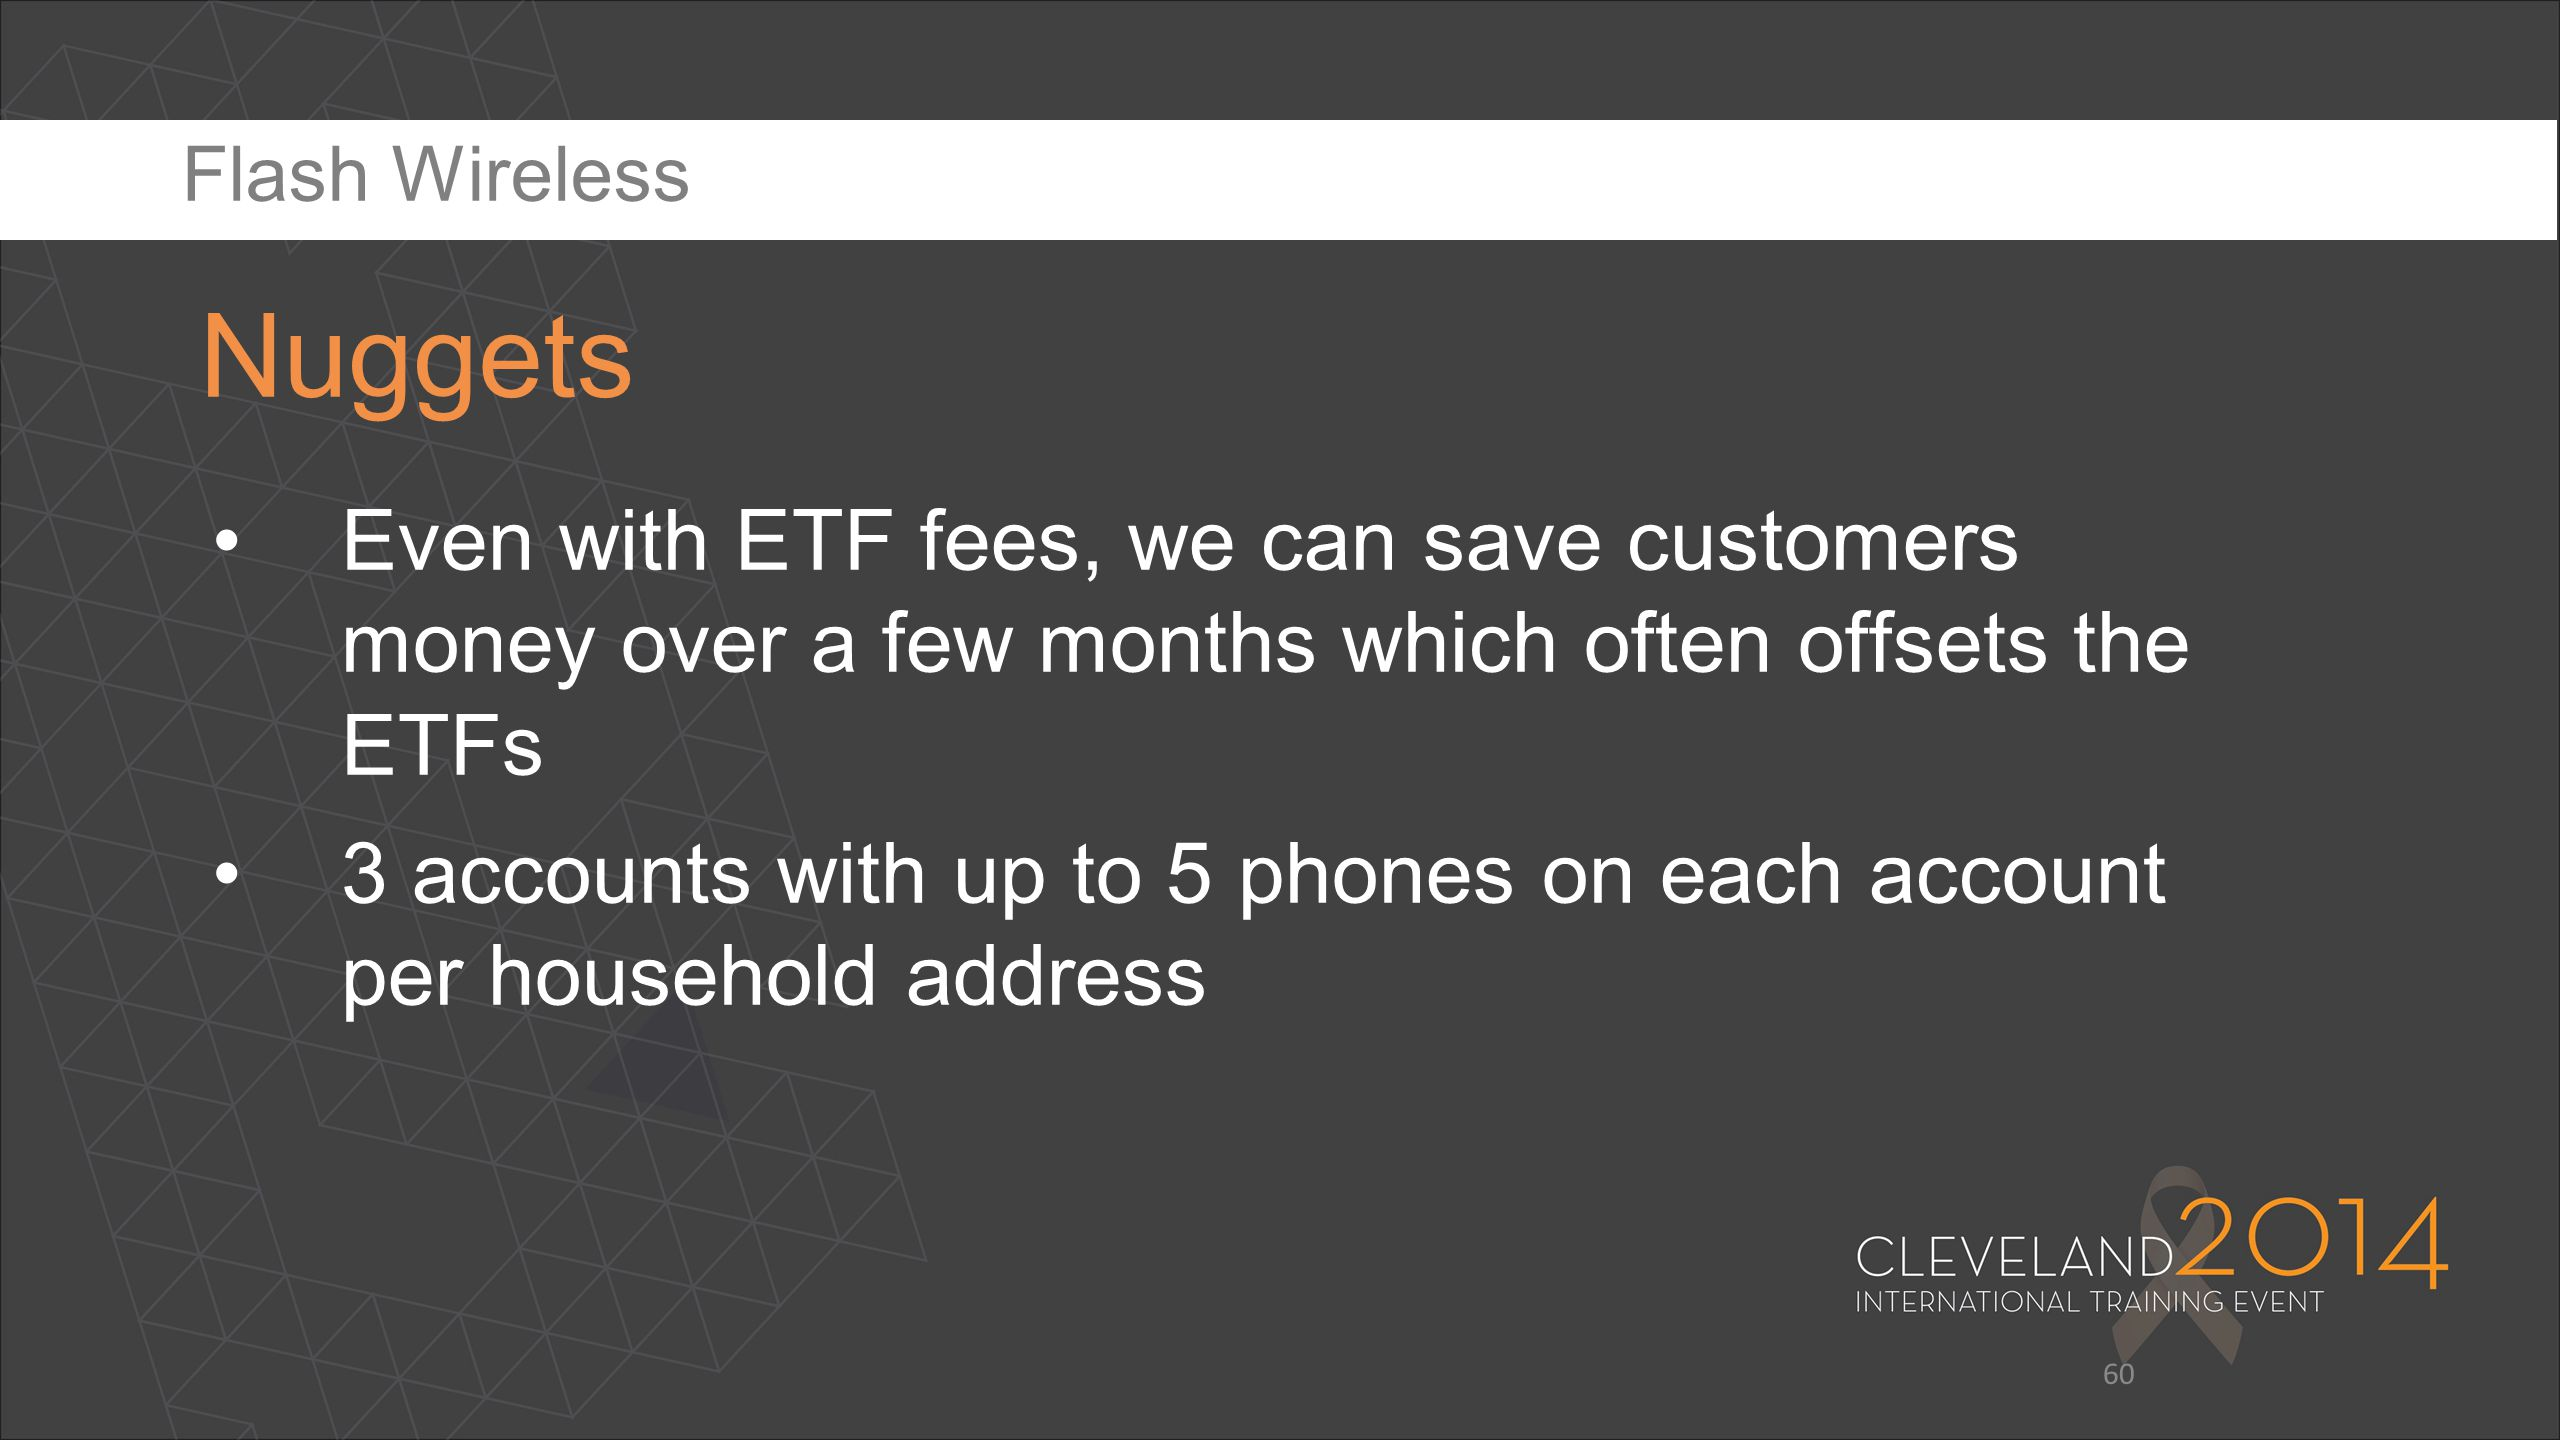 Flash Wireless Nuggets. Move ETF copy to previous ETF slides – about breaking contracts.